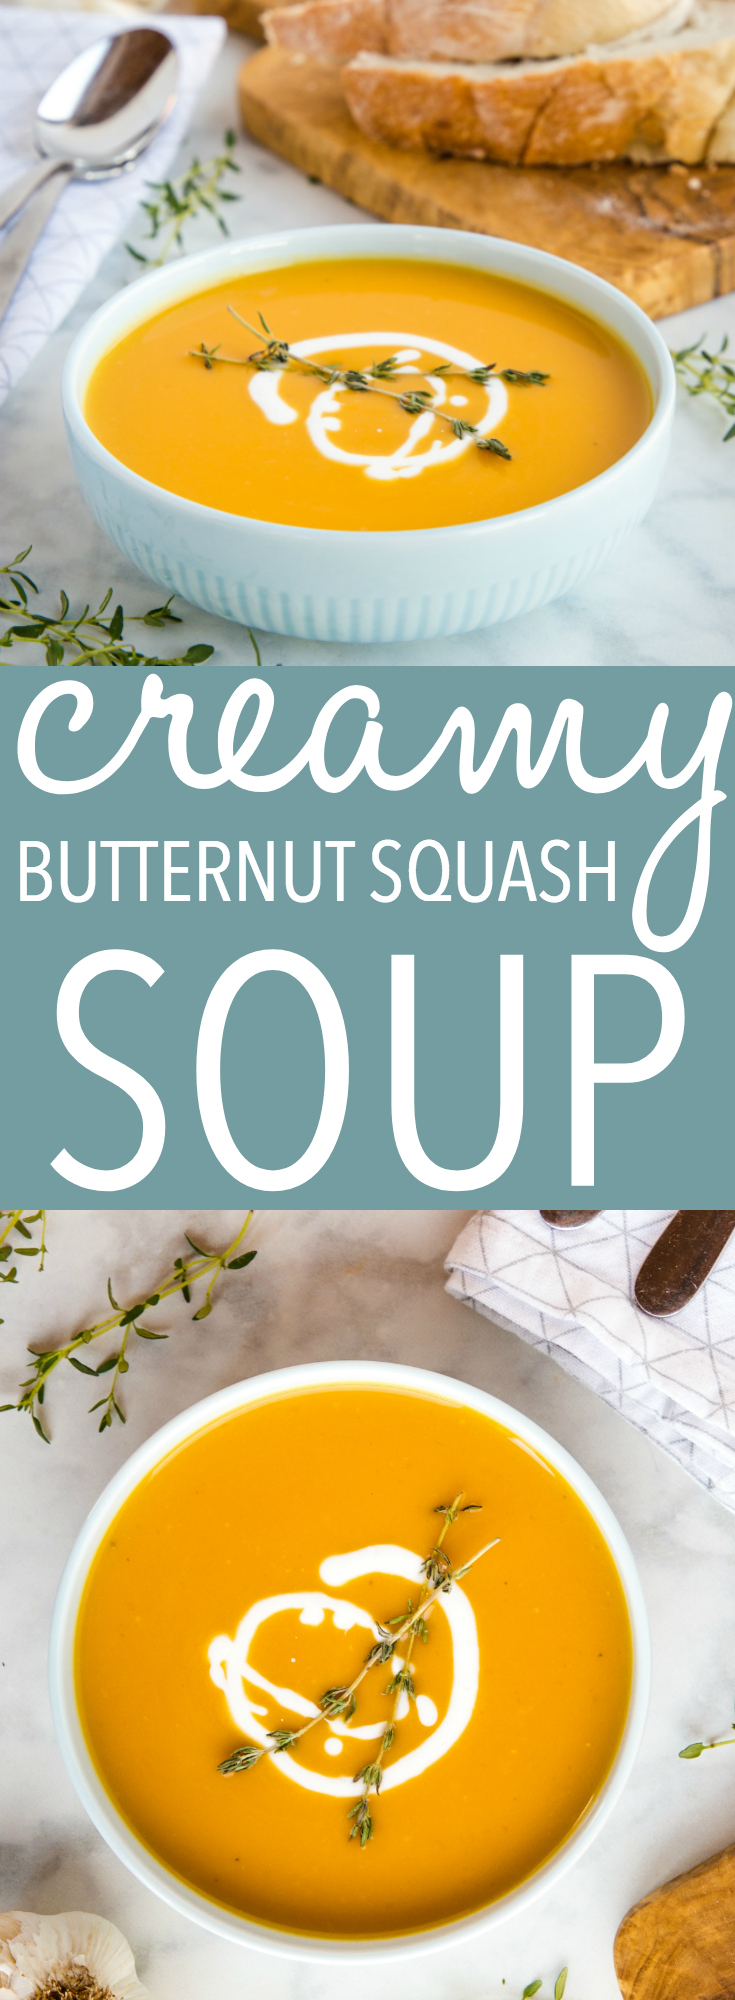 This Creamy One Pot Butternut Squash Soup is so easy to make and it's the perfect comforting soup for fall! And it's healthy, dairy-free, and vegan too! Recipe from thebusybaker.ca! #vegan #vegetarian #soup #easyrecipe #recipe #fall #autumn #winter #comfortfood #foodblog #onepot #butternutsquash #squash #pumpkin via @busybakerblog